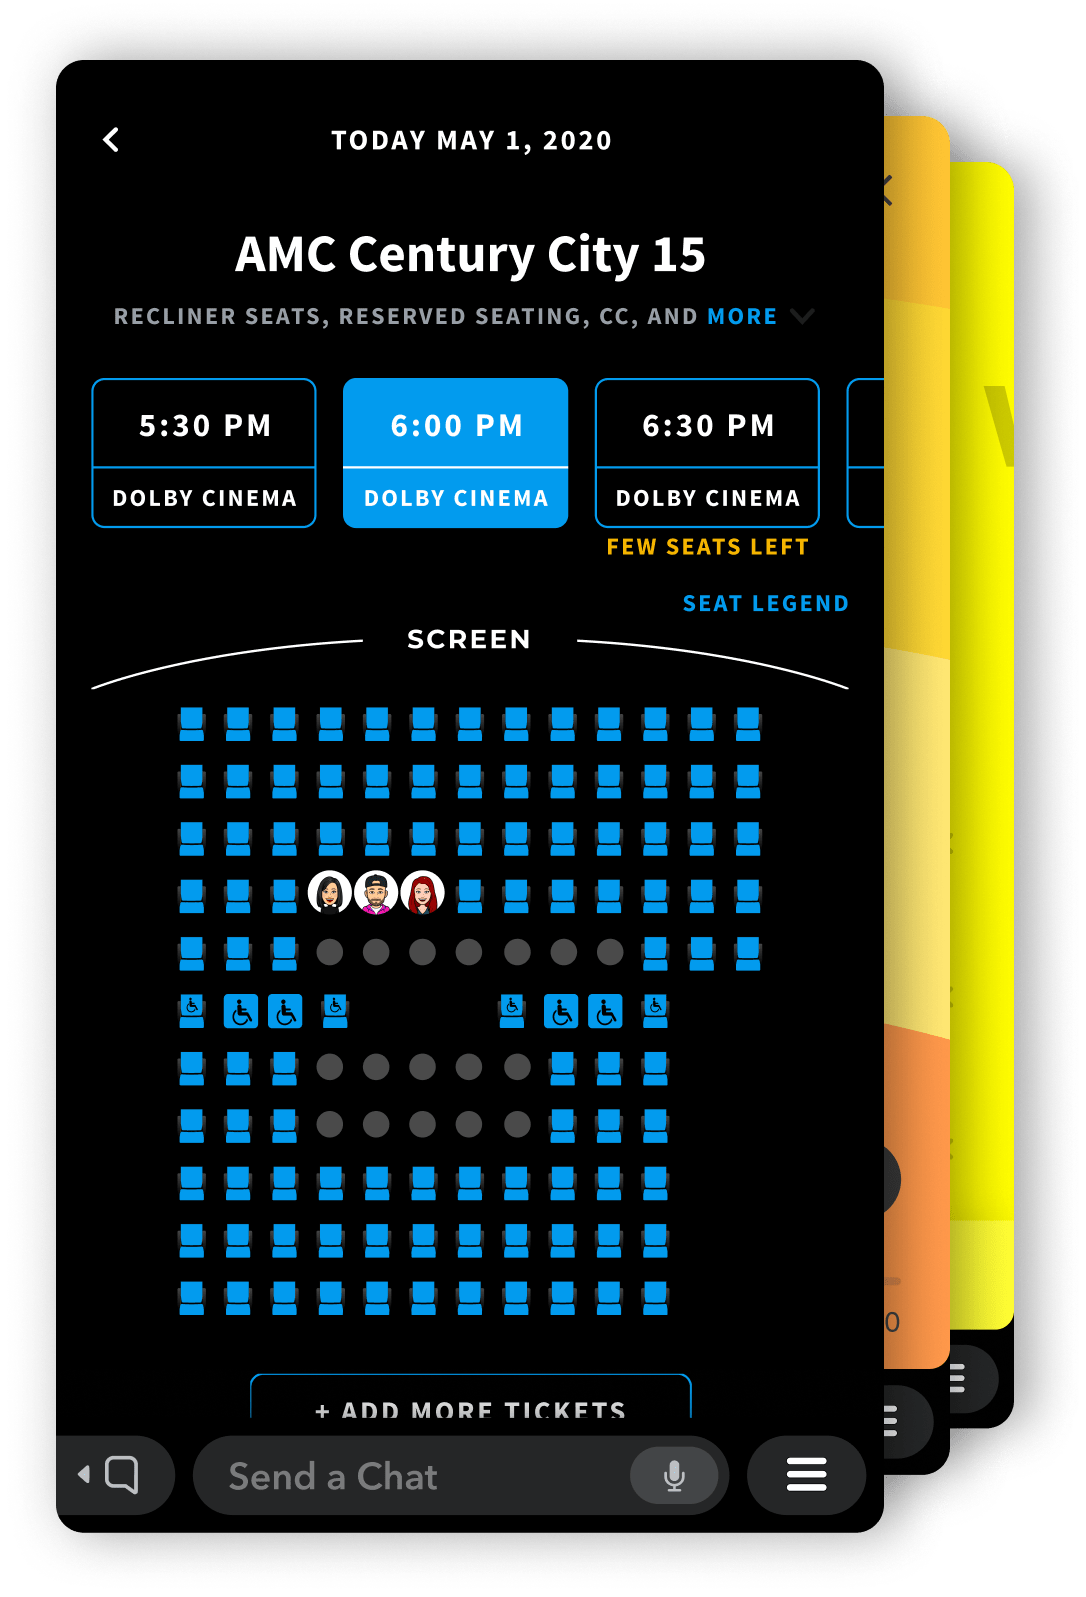 The Atom Tickets mini app running in Snapchat showing three snapchat users reserving their seats in a movie theater.